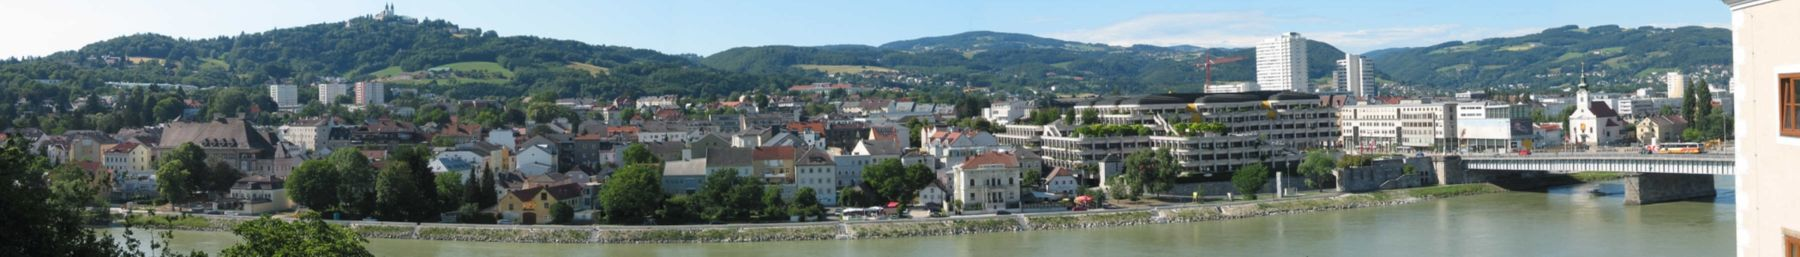 The West Bank of the Danube in Linz.